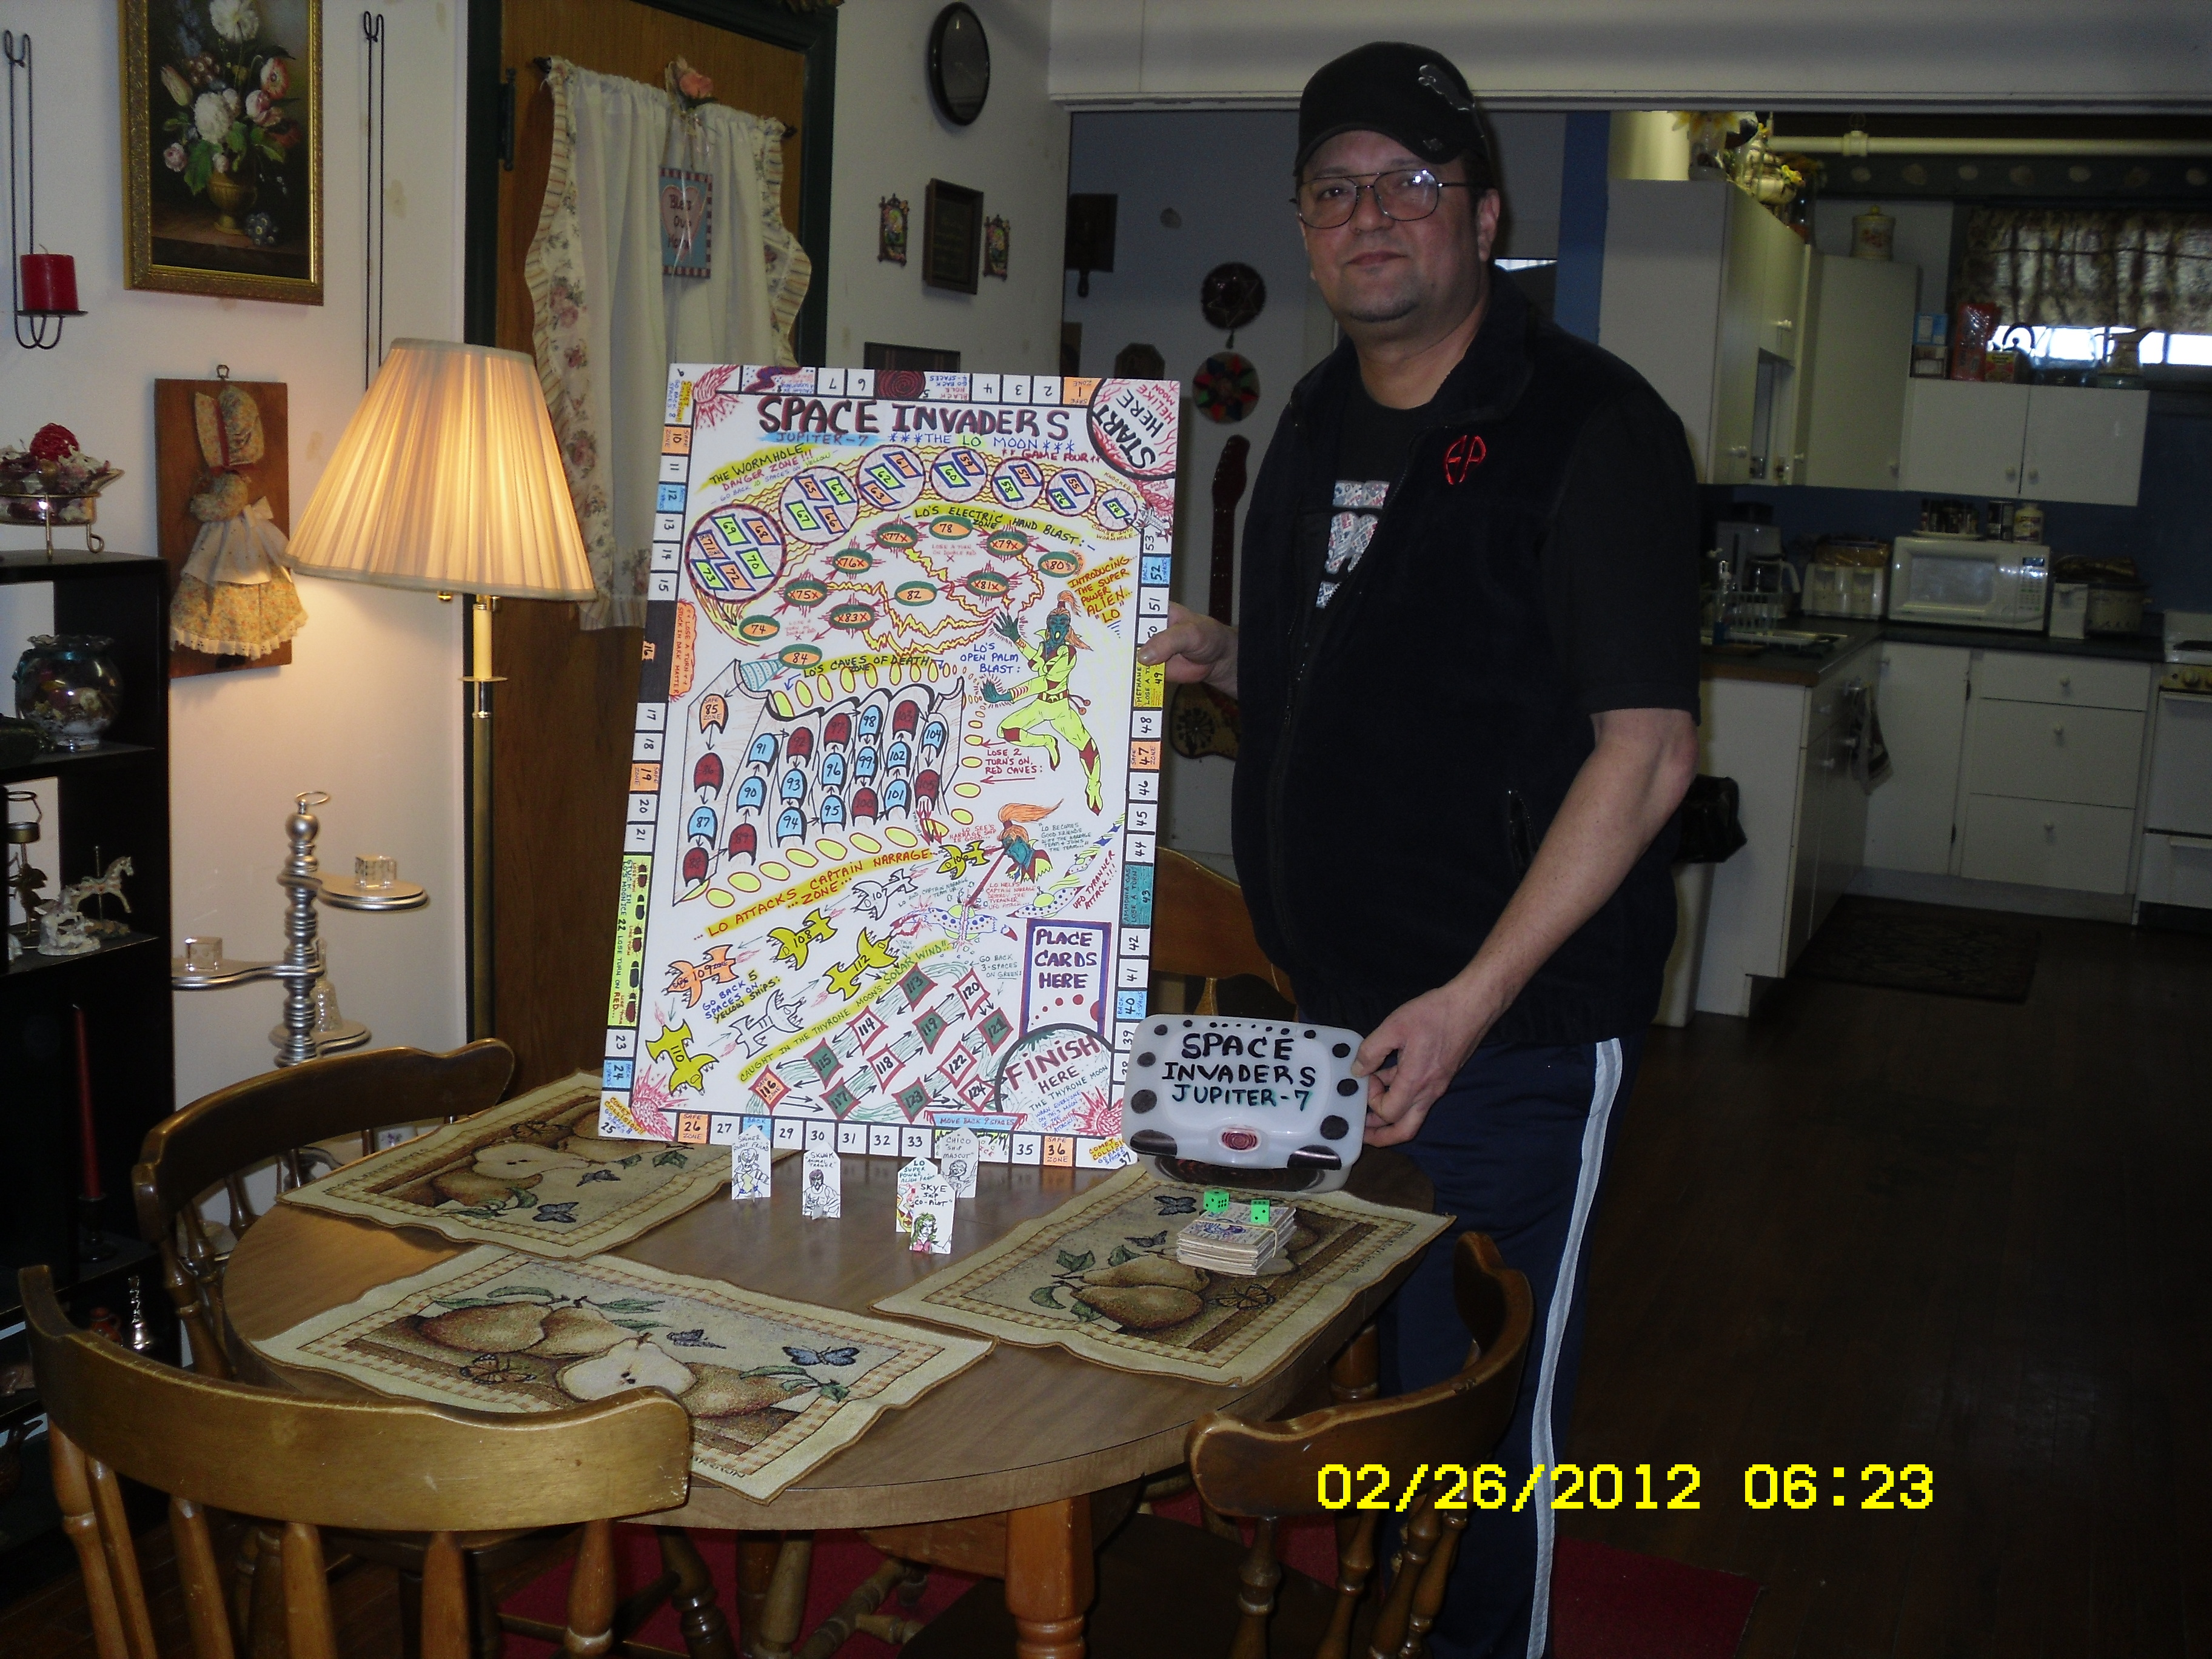 Me standing next to one of my completed board games...